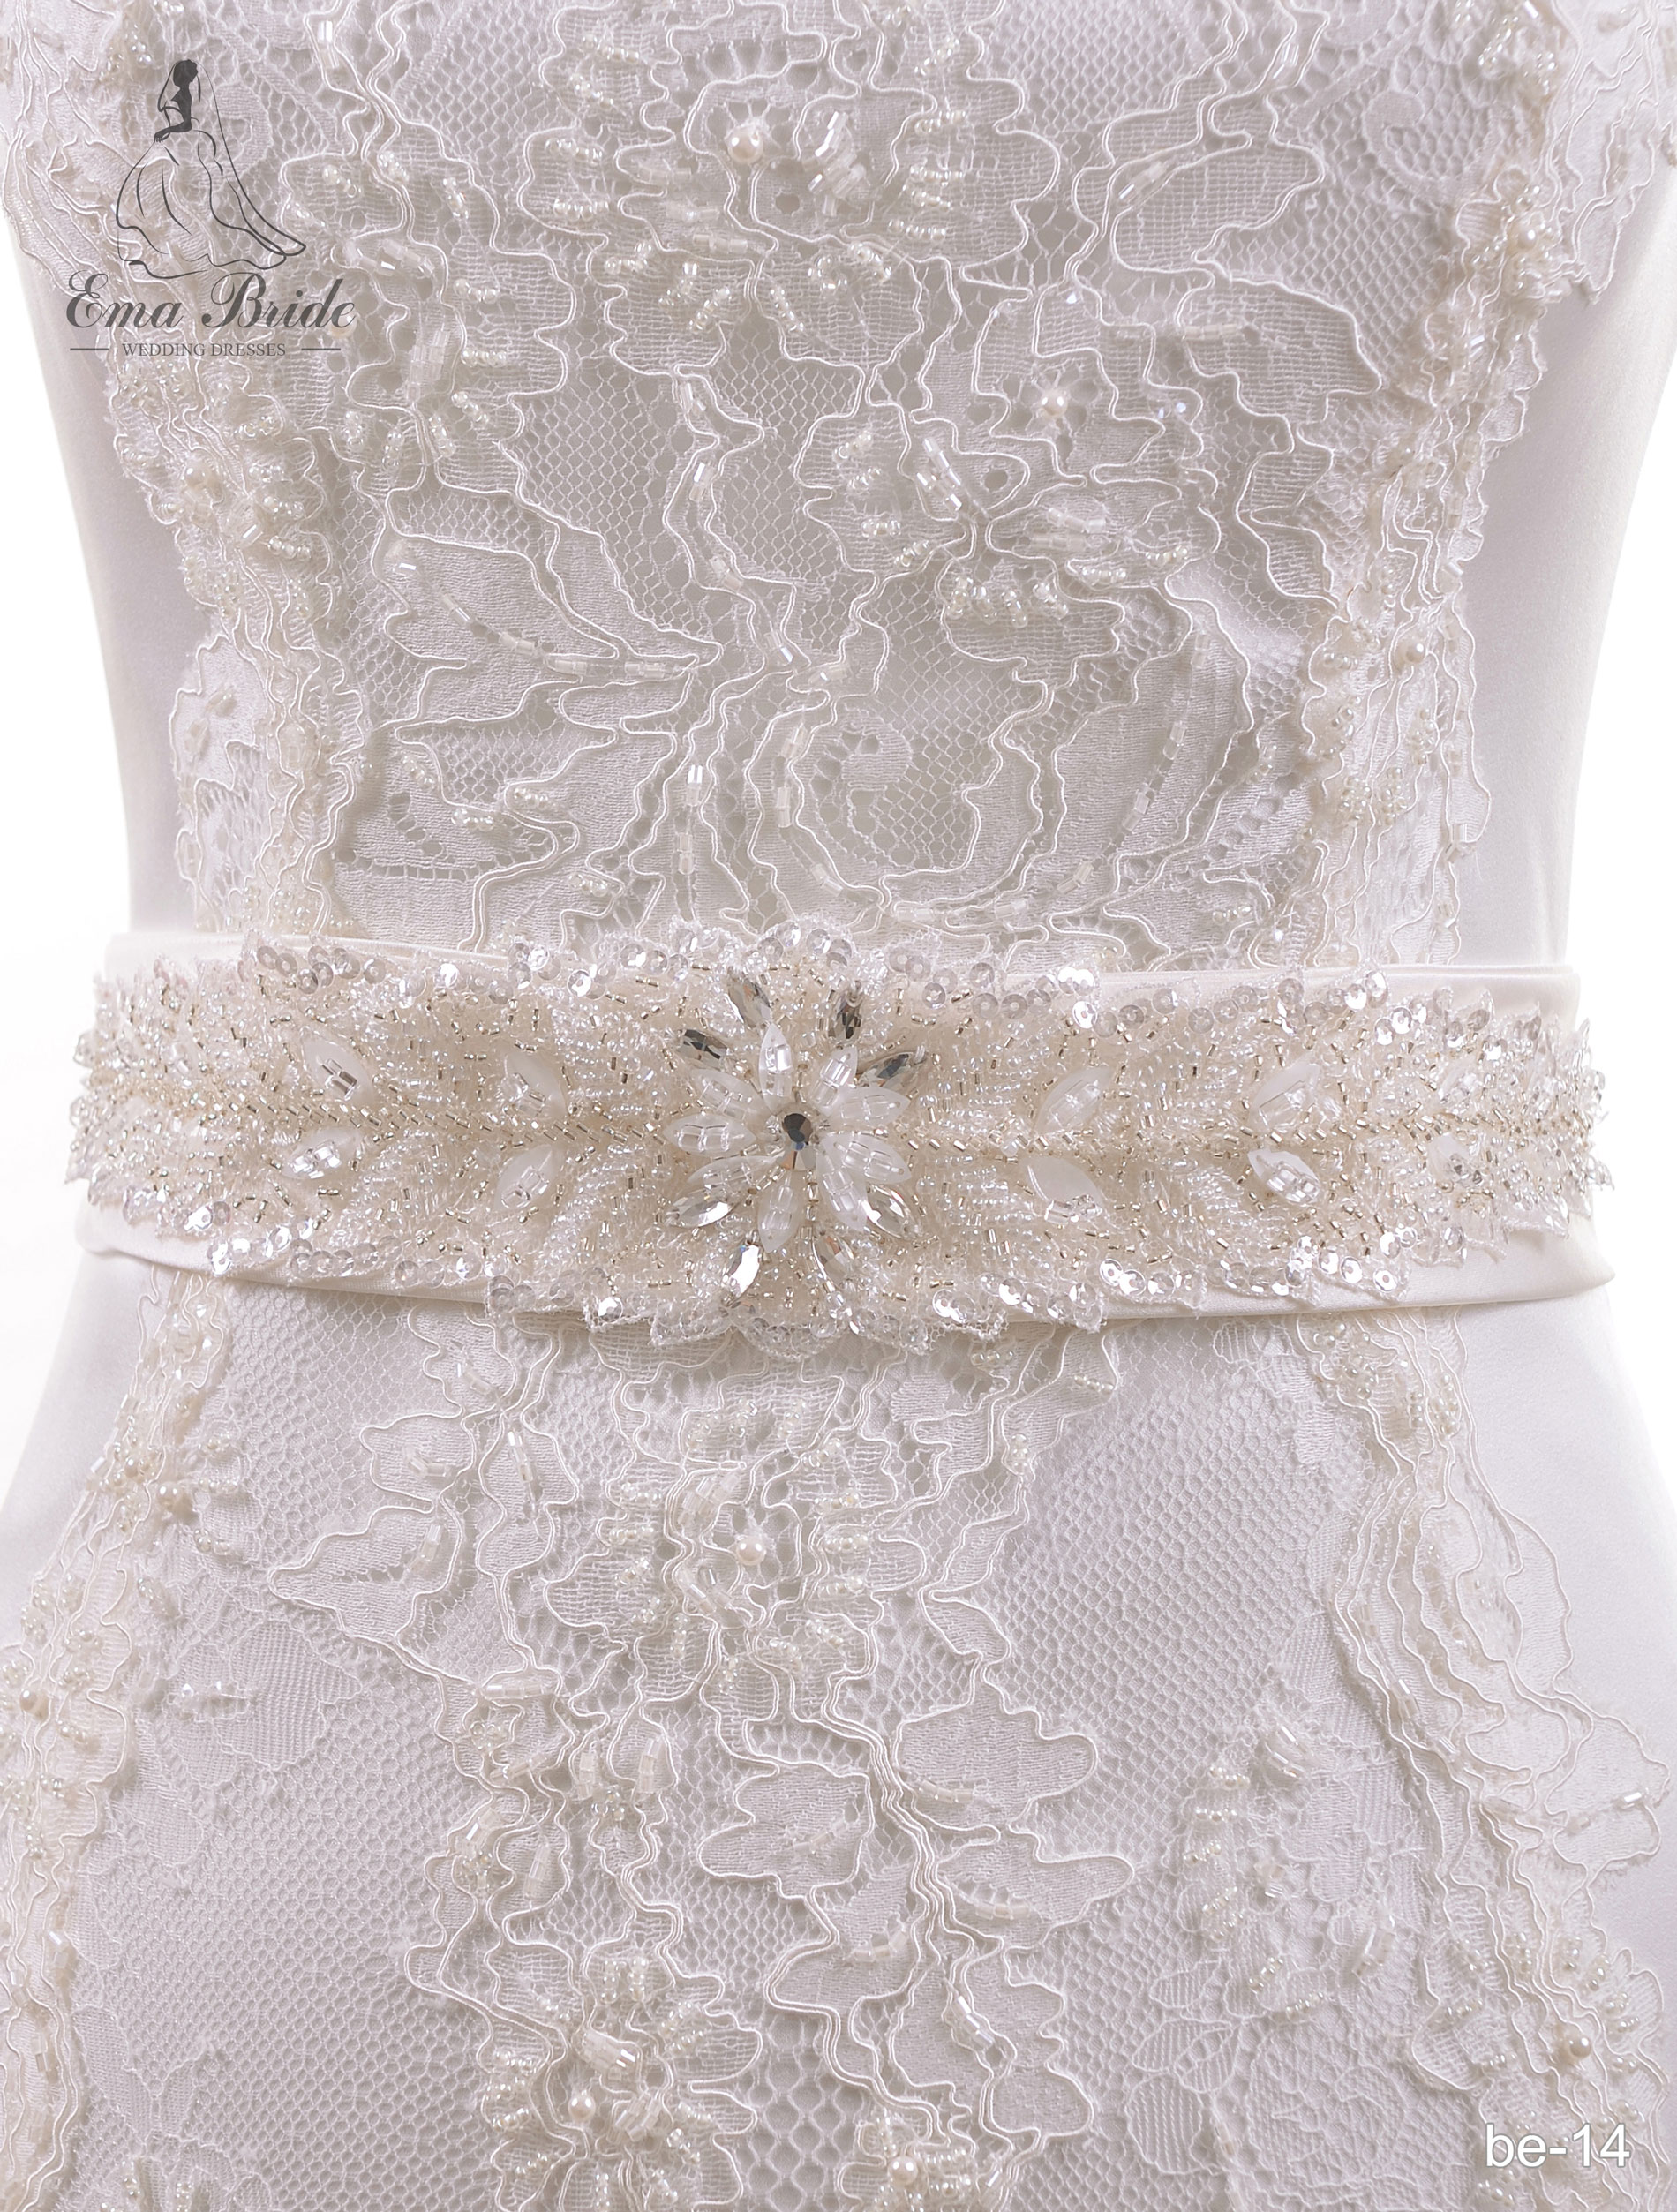 A belt for a wedding dress Be-14